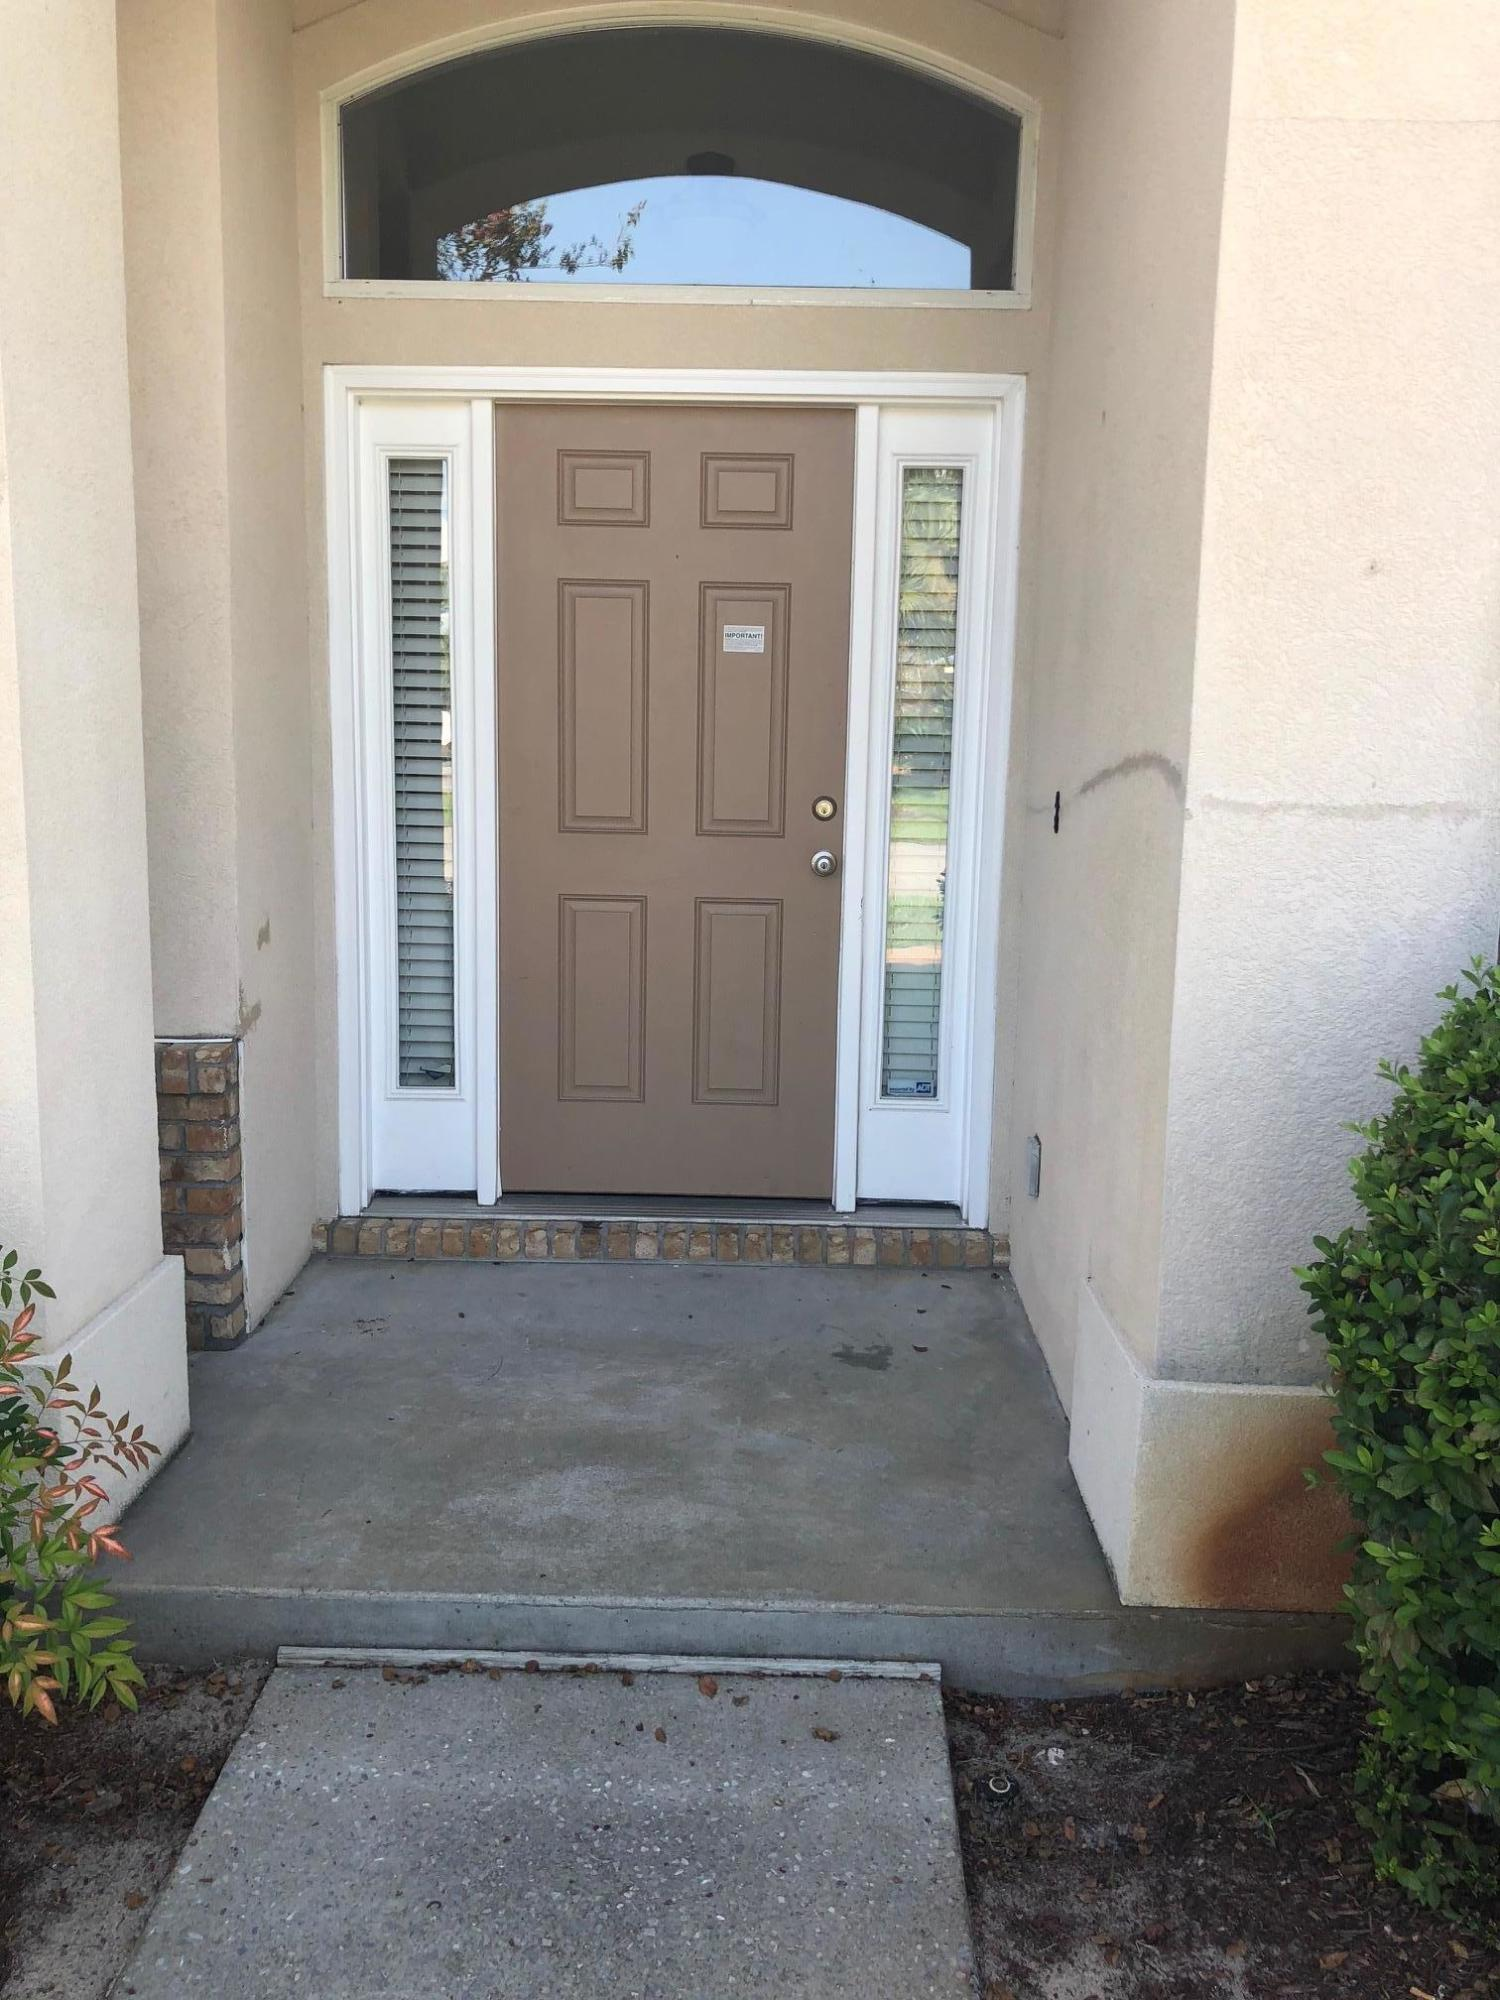 Short Sale.  With a little TLC this will be a lovely home. Buyer to verify all pertinent information including square footage and lot dimensions. Property to be sold as is.